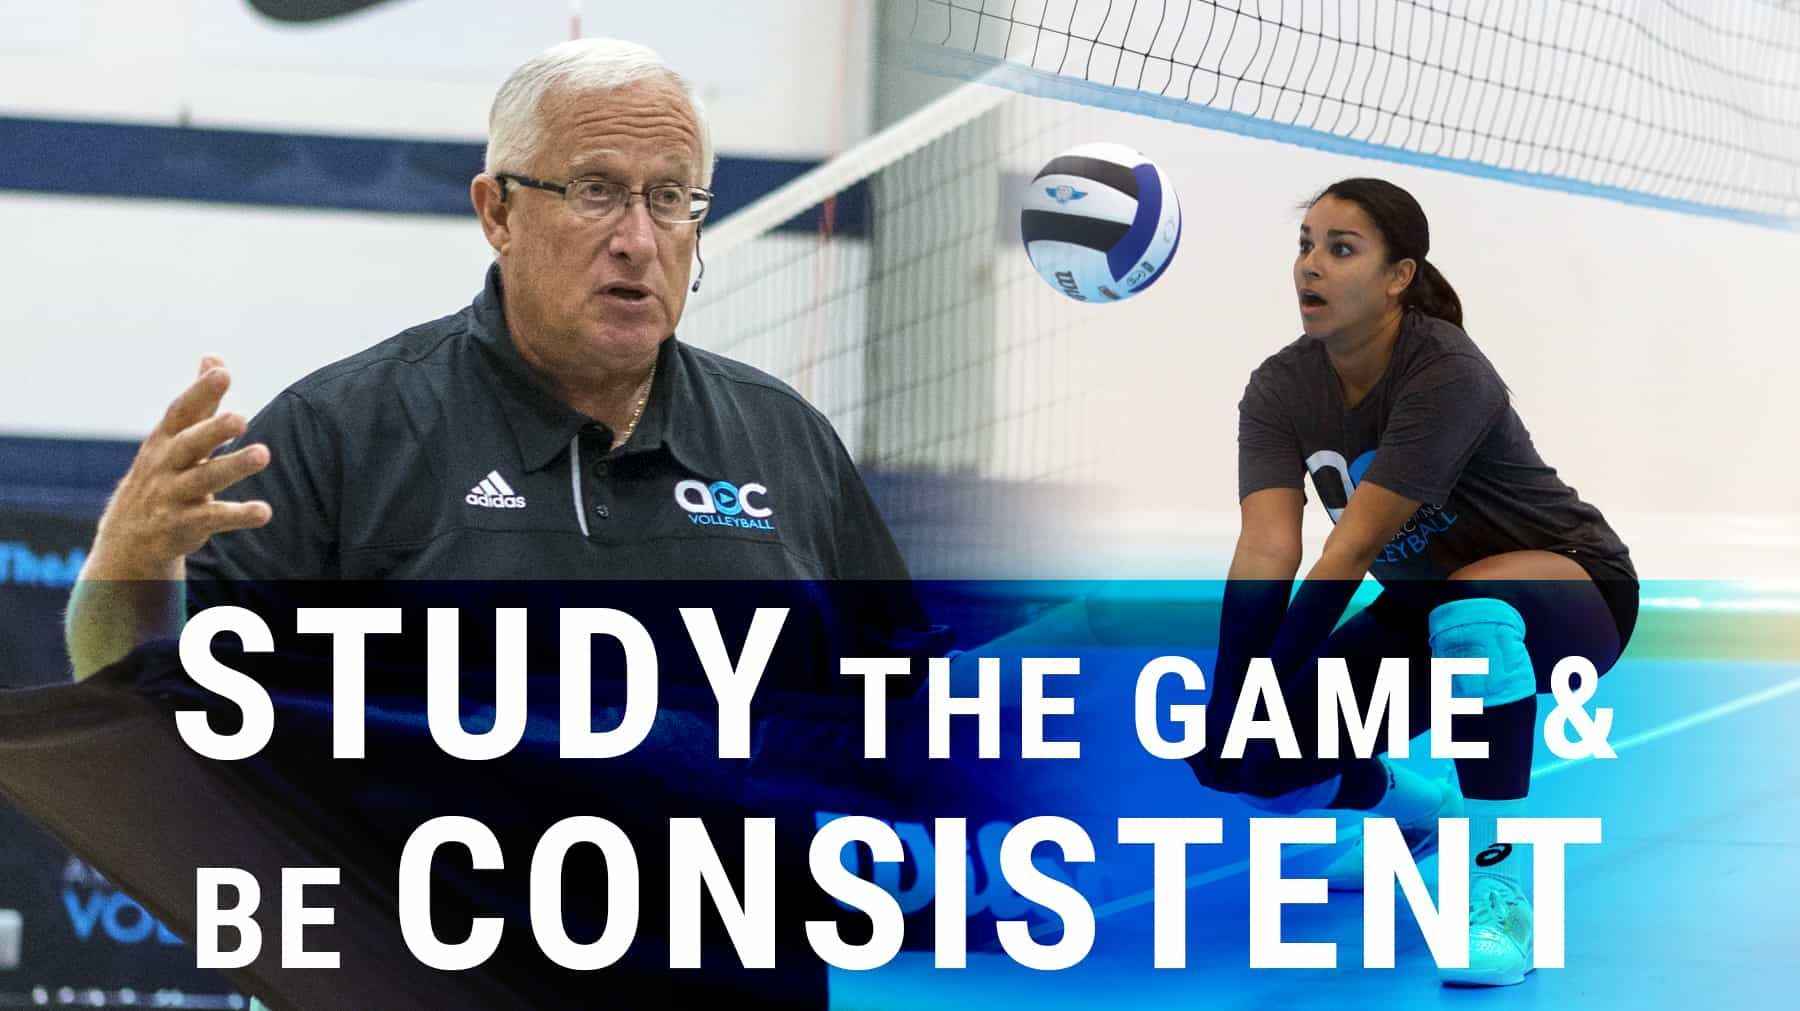 Study The Game Be Consistent The Art Of Coaching Volleyball Coaching Volleyball Coaching Proper Running Technique